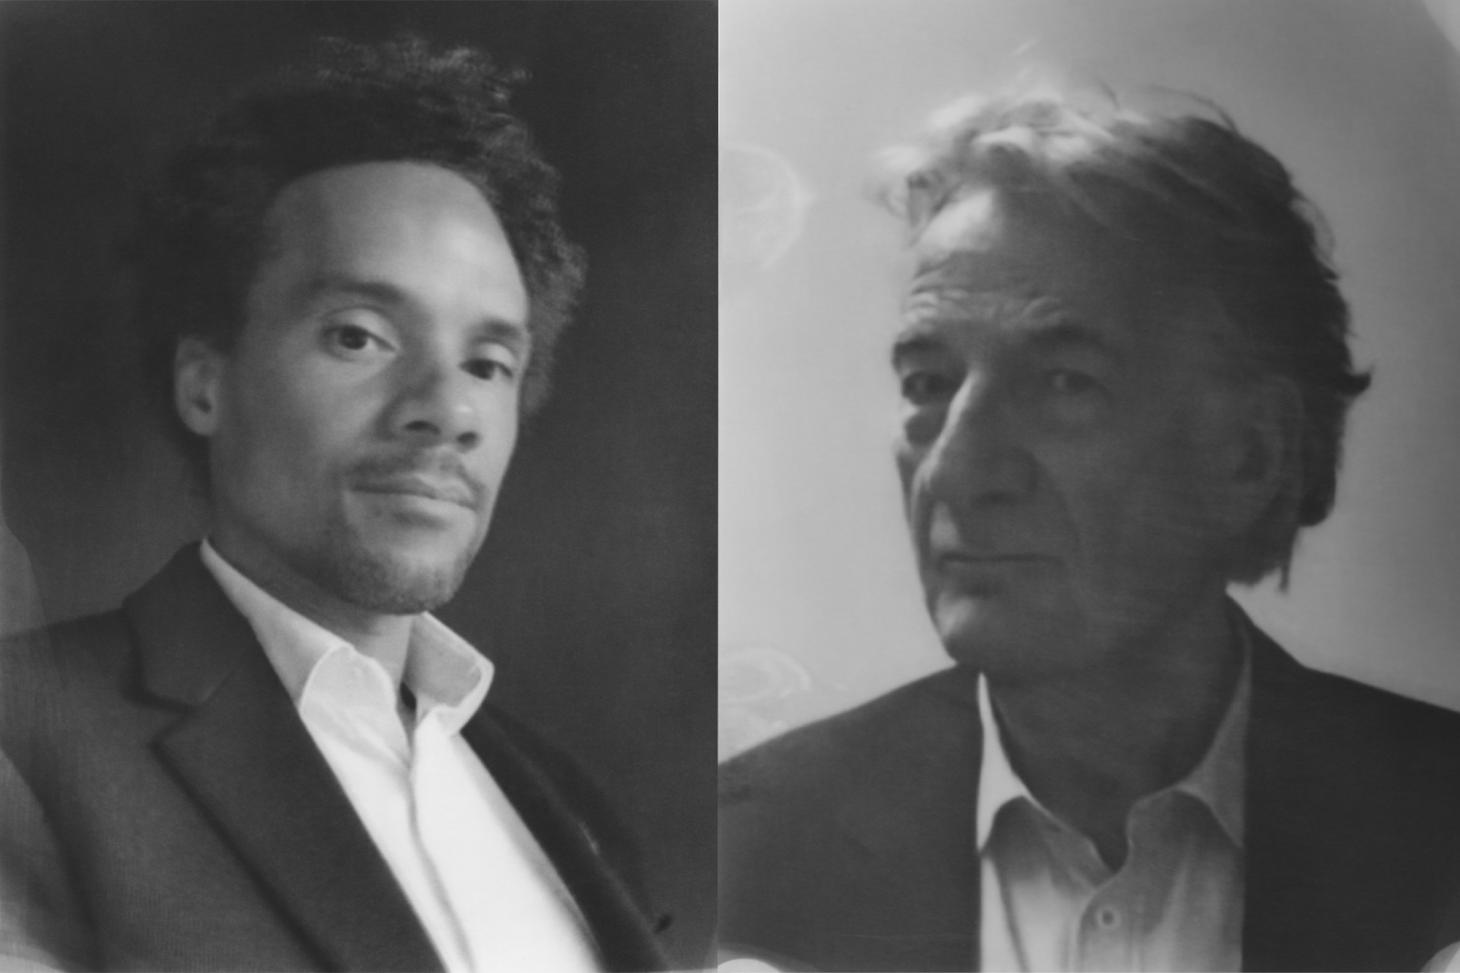 Oliver Heilmer and Paul Smith, portraits by Baud Postma